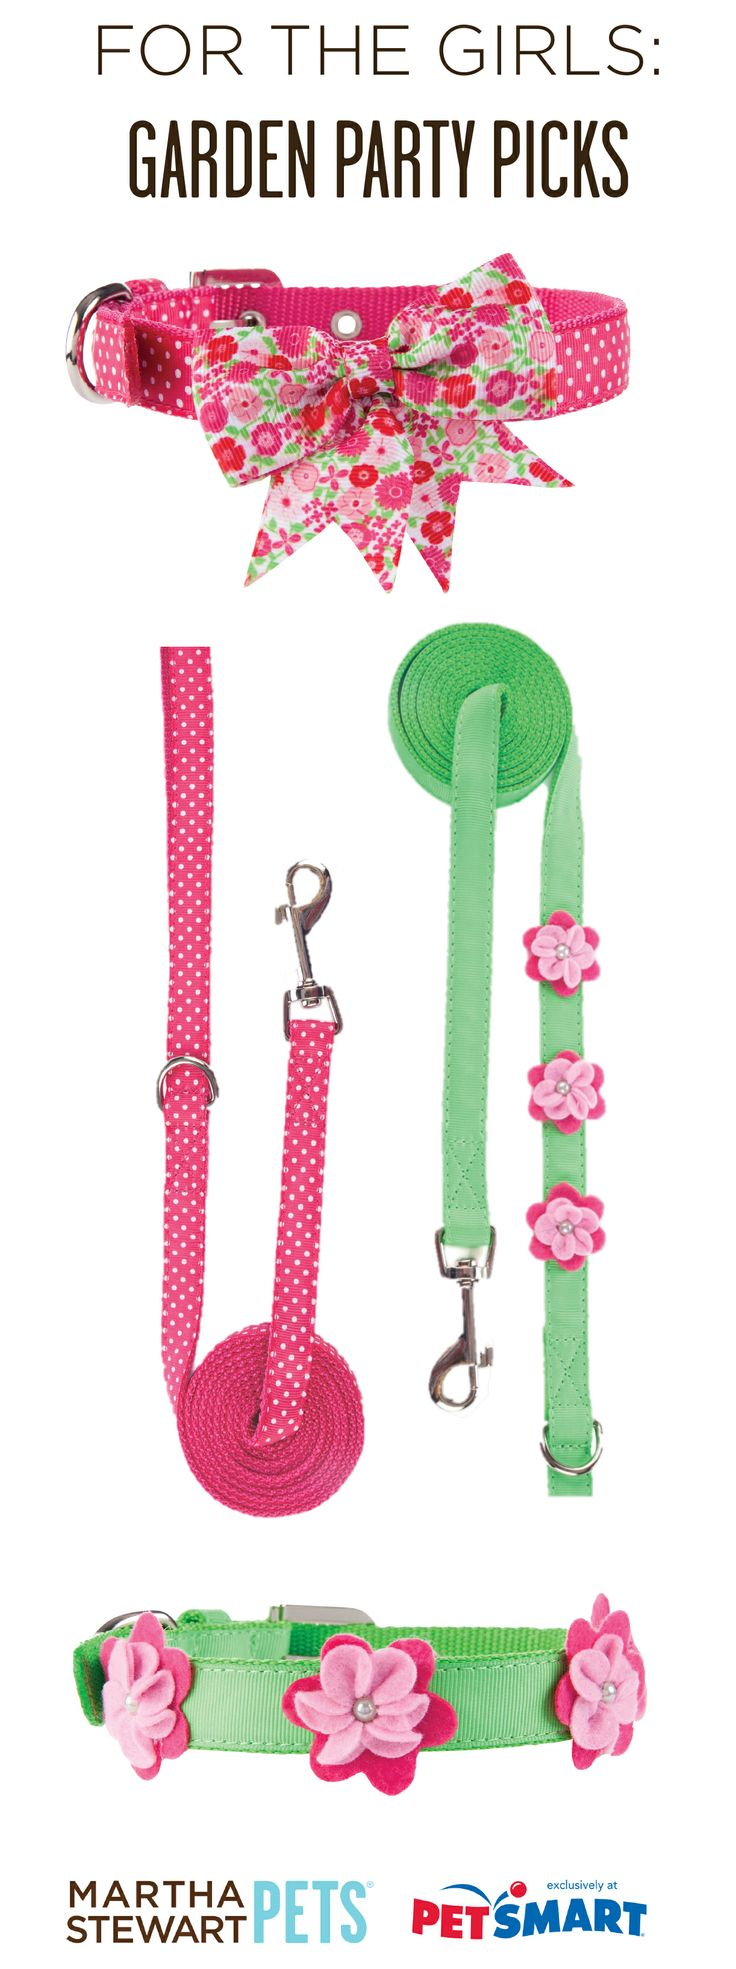 The #MarthaStewartPets Garden Party collection has the perfect mix of pink, green, dots, and bows! Only at #PetSmart.: Doggy Supplies, Girl Dog Collars, Pets Flossie Nala Maddy, Garden Parties, Marthastewartpets Garden, Doggy Do S